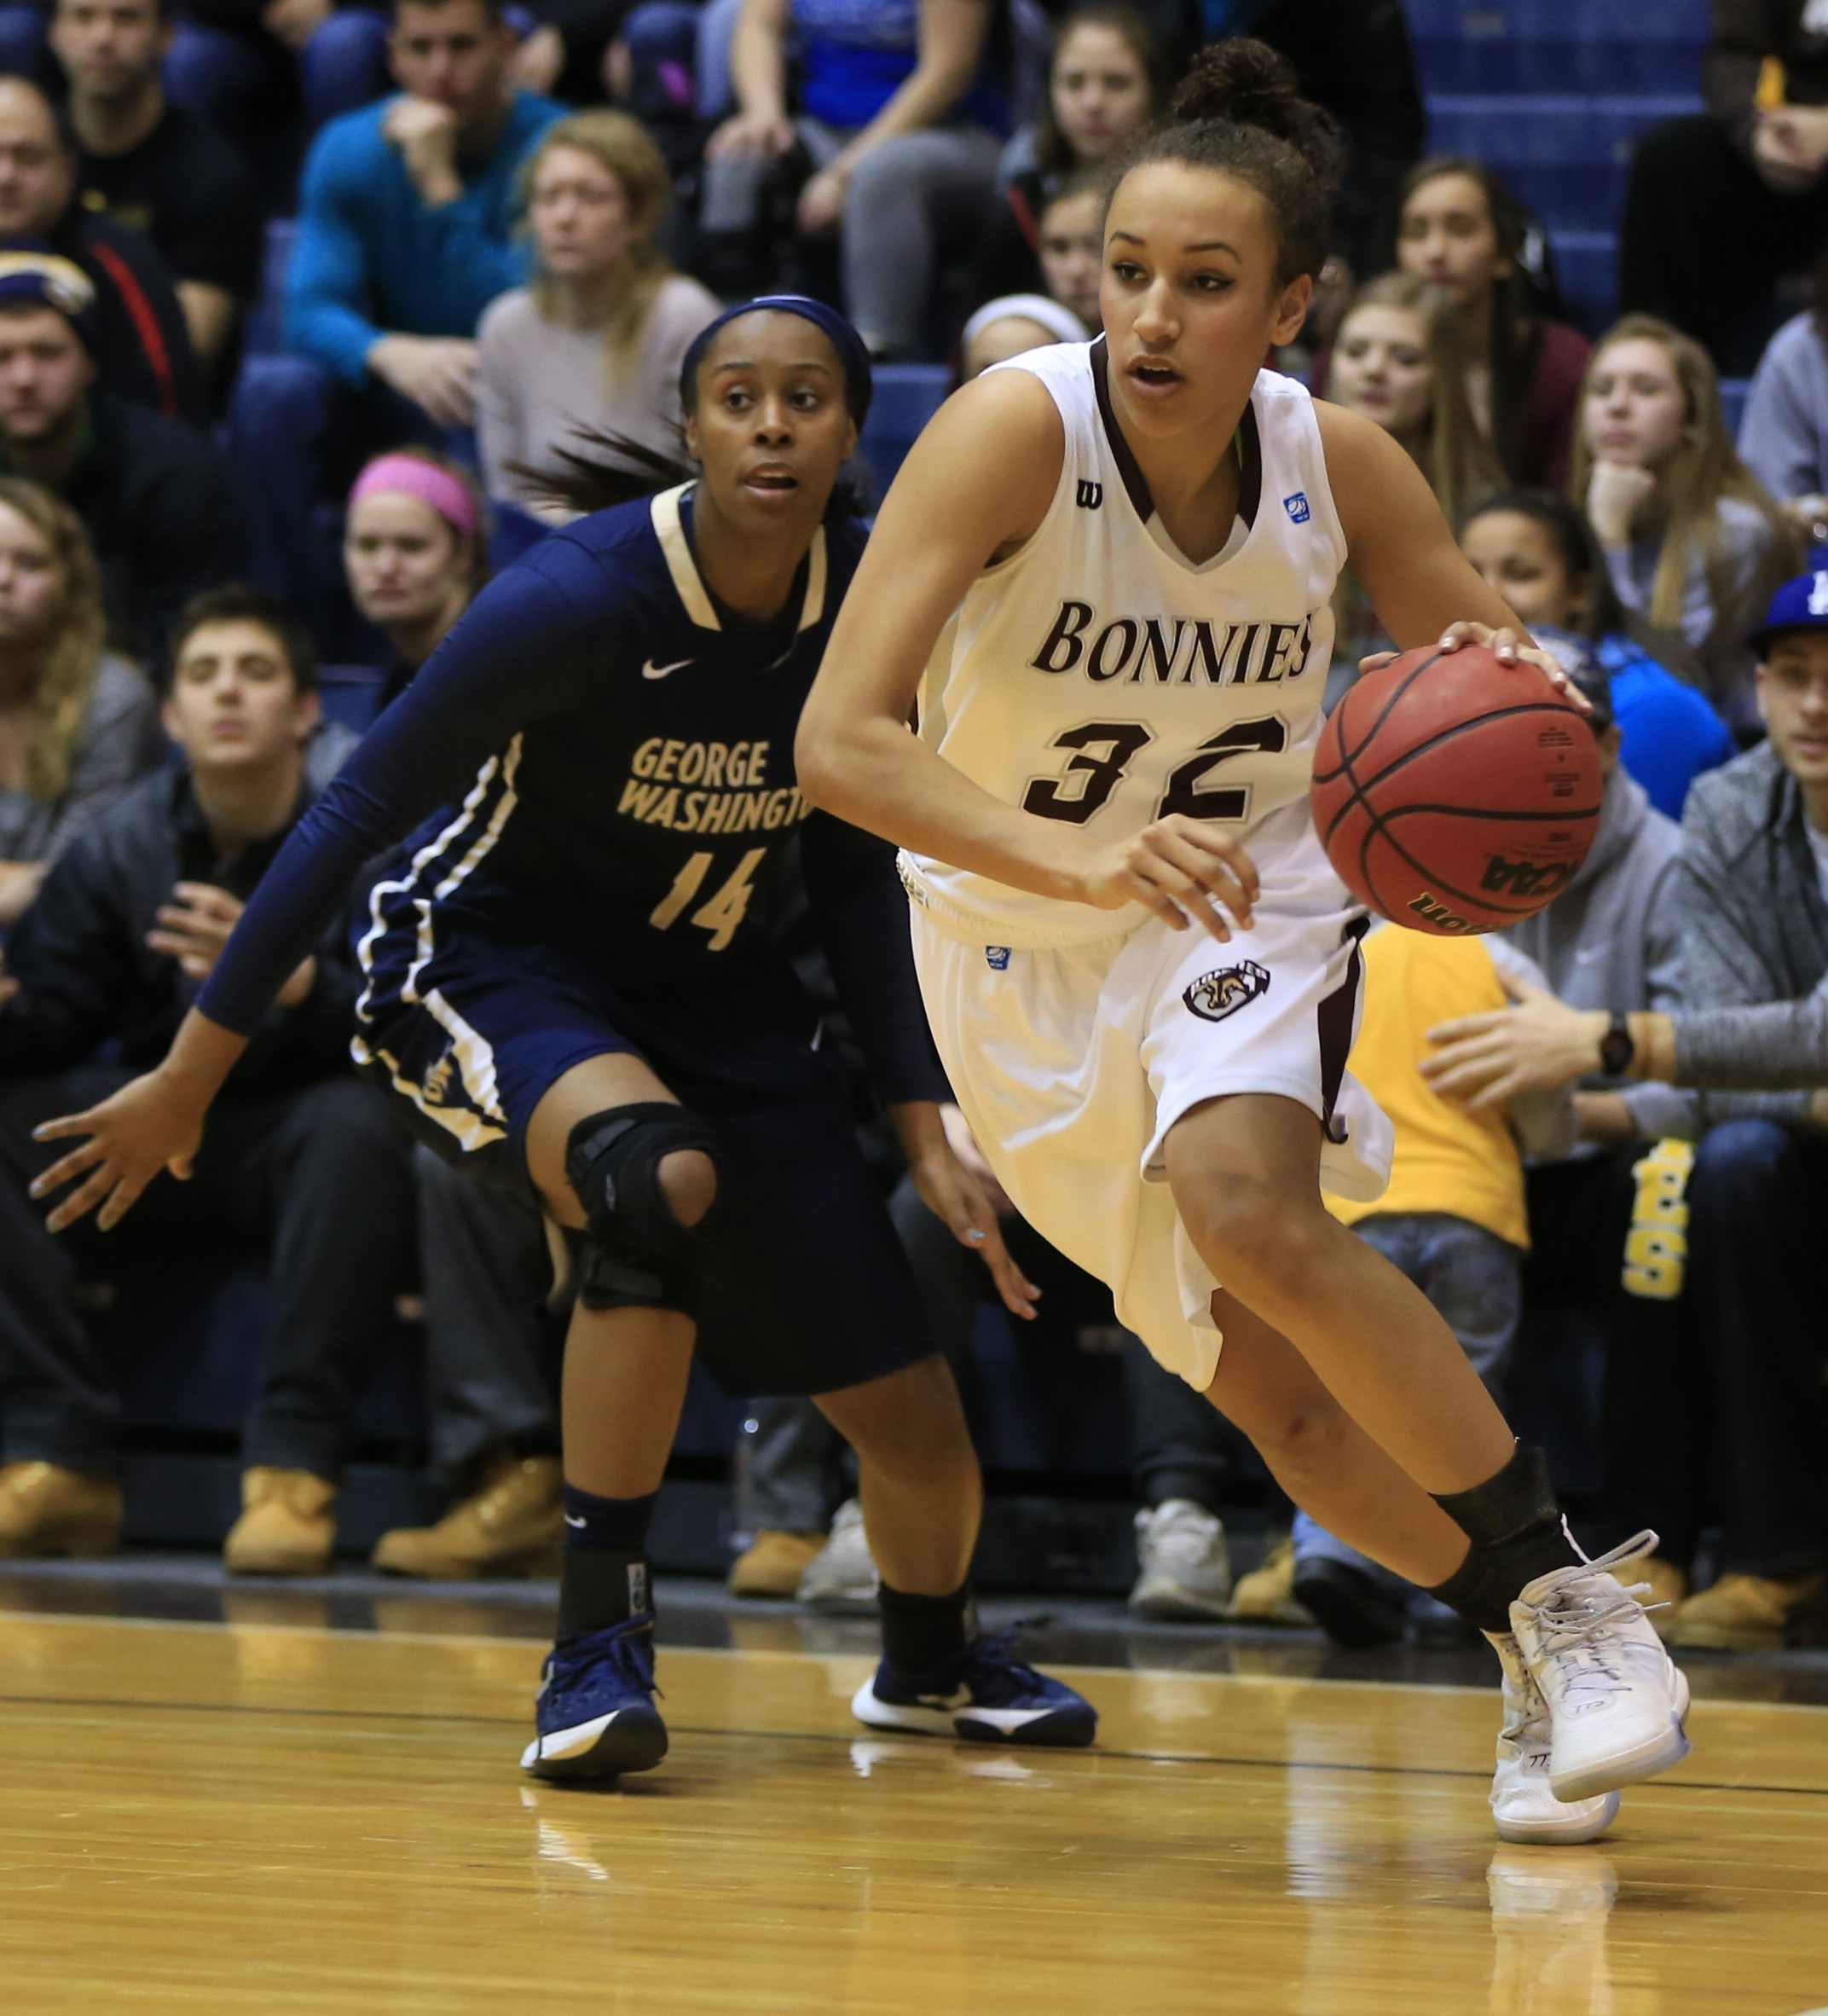 St. Bonaventure's Miranda Drummond drives on George Washington during first-half action at the Reilly Center on Feb. 17, 2016.